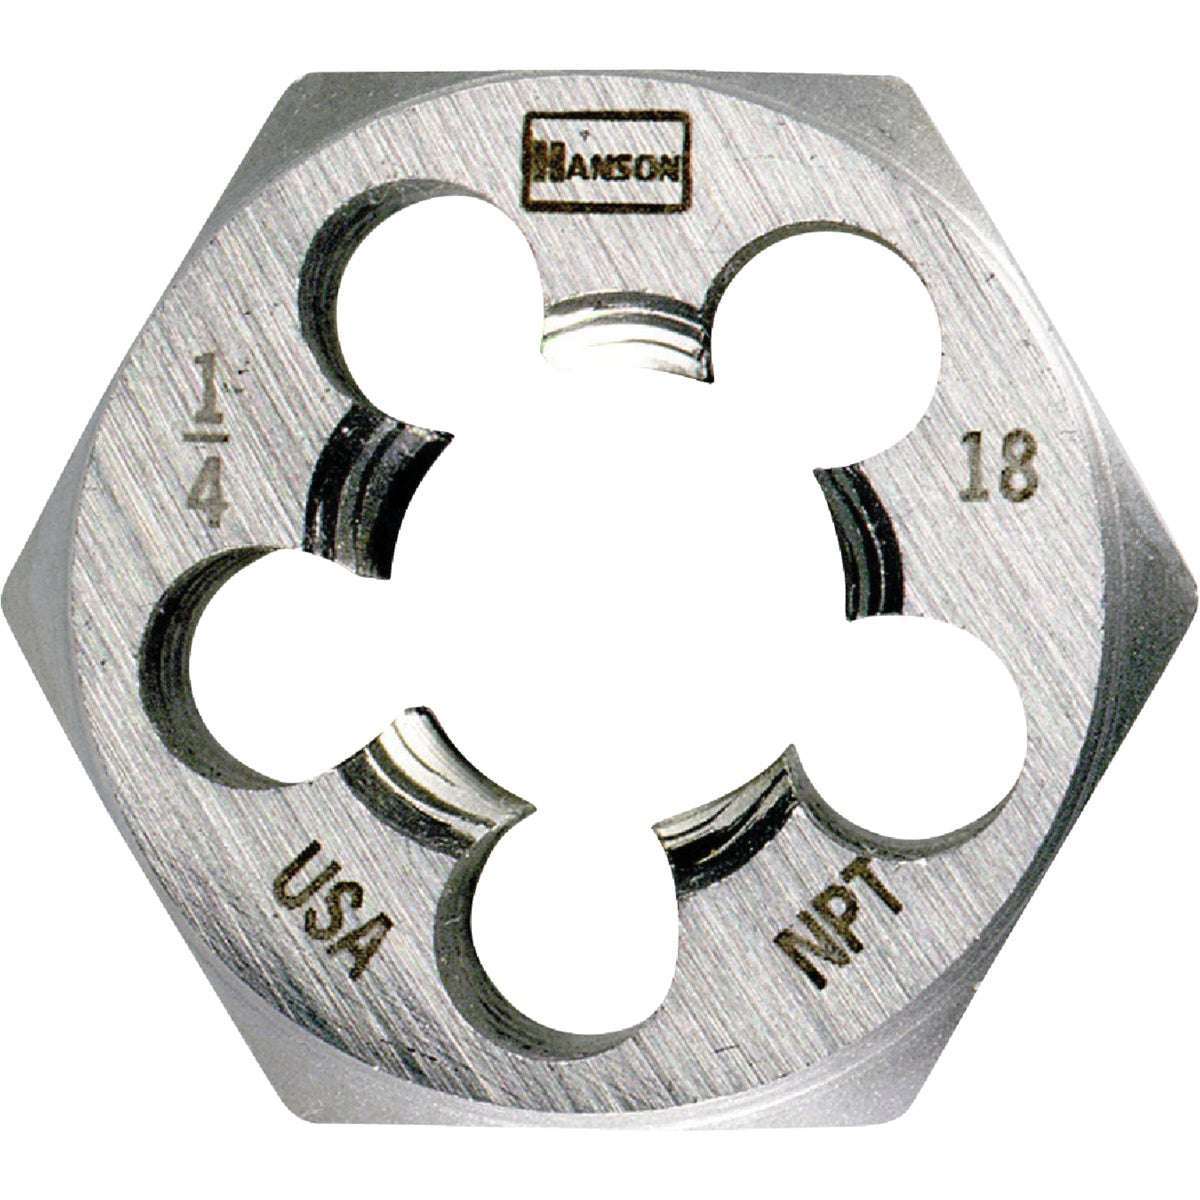 4-36NS HEX DIE - 9311 by Irwin Industr Tool